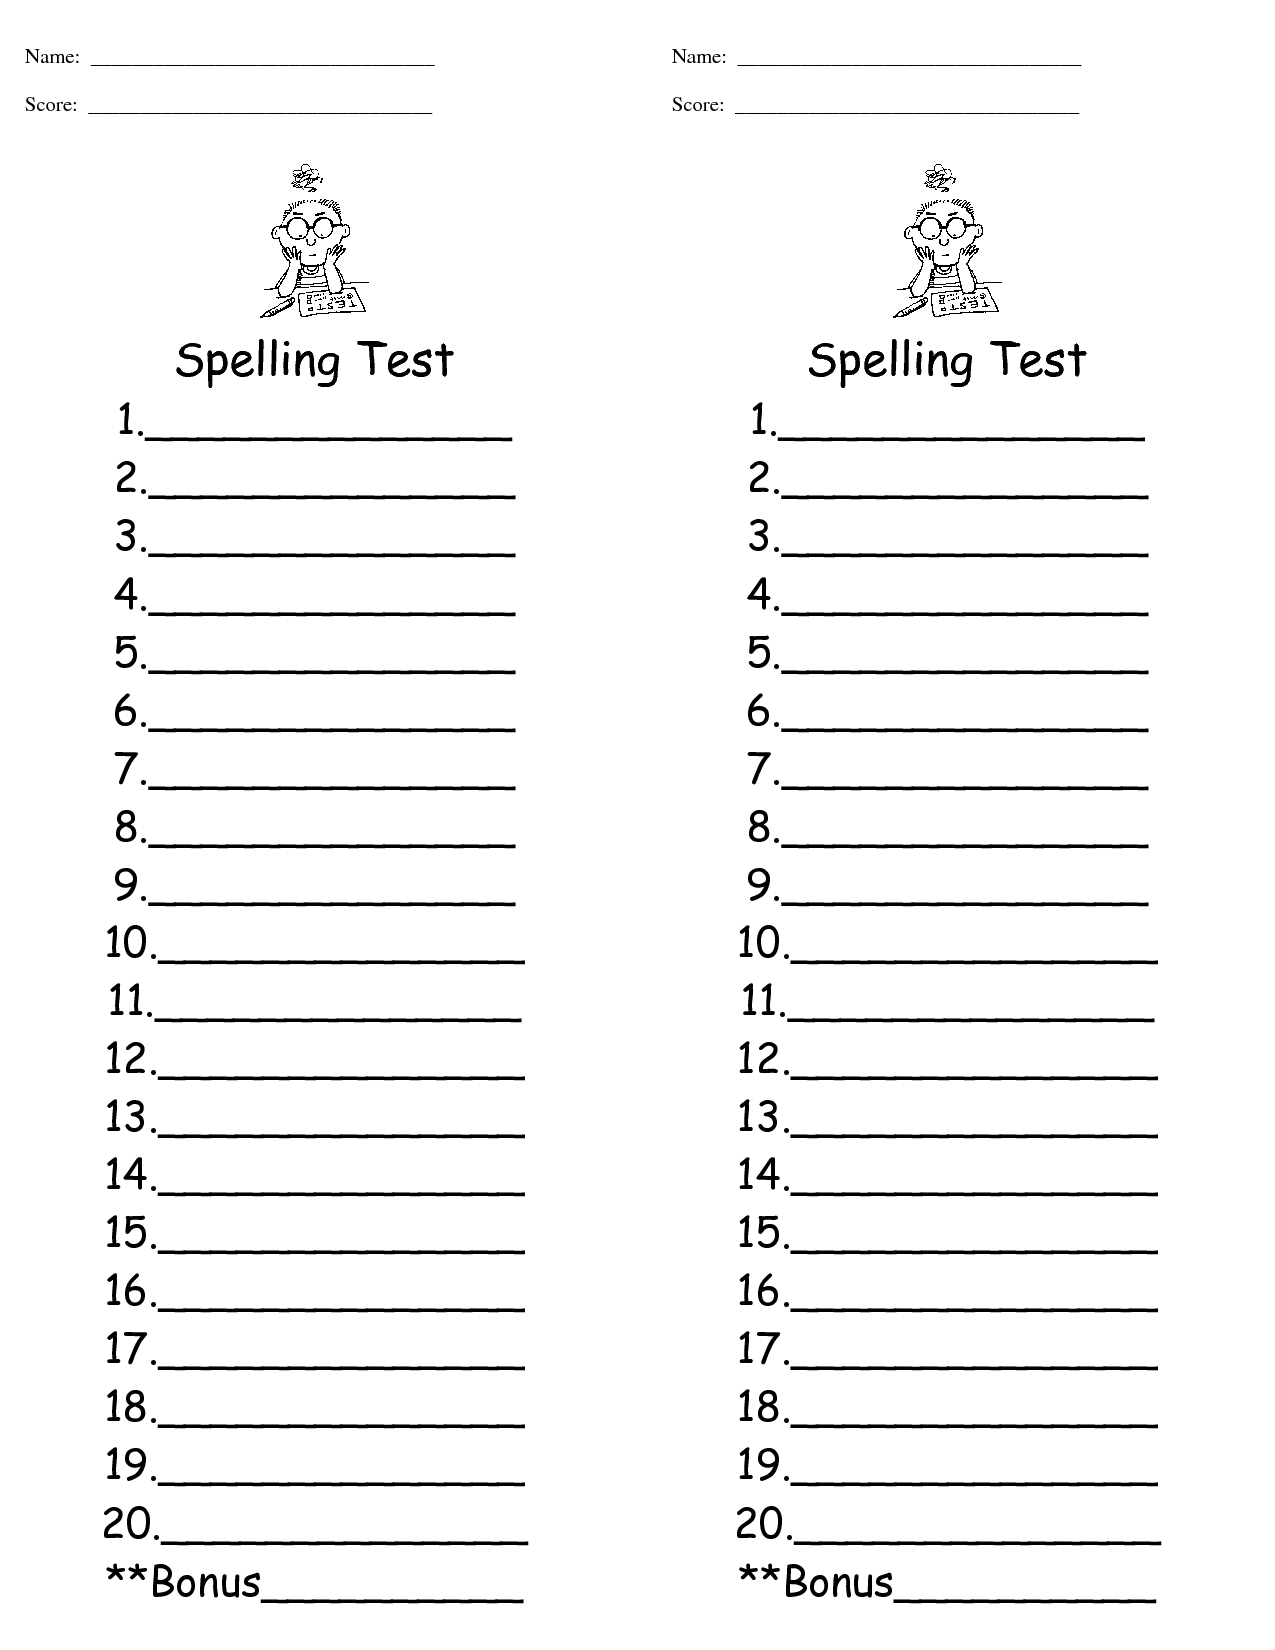 Spelling Dictation Worksheet